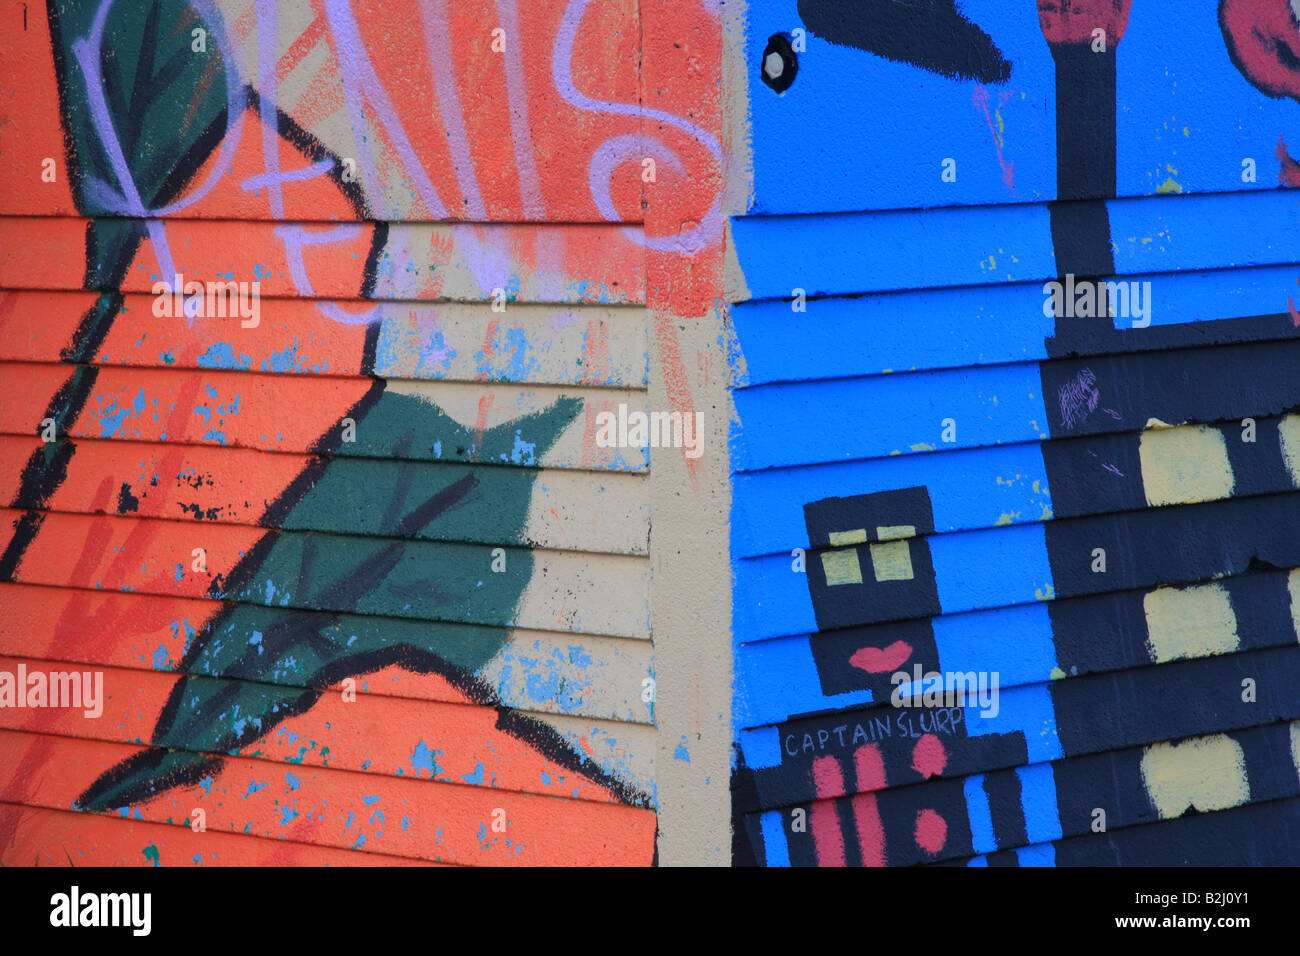 Graffiti in the Nose Hill park, Calgary, Alberta - Stock Image